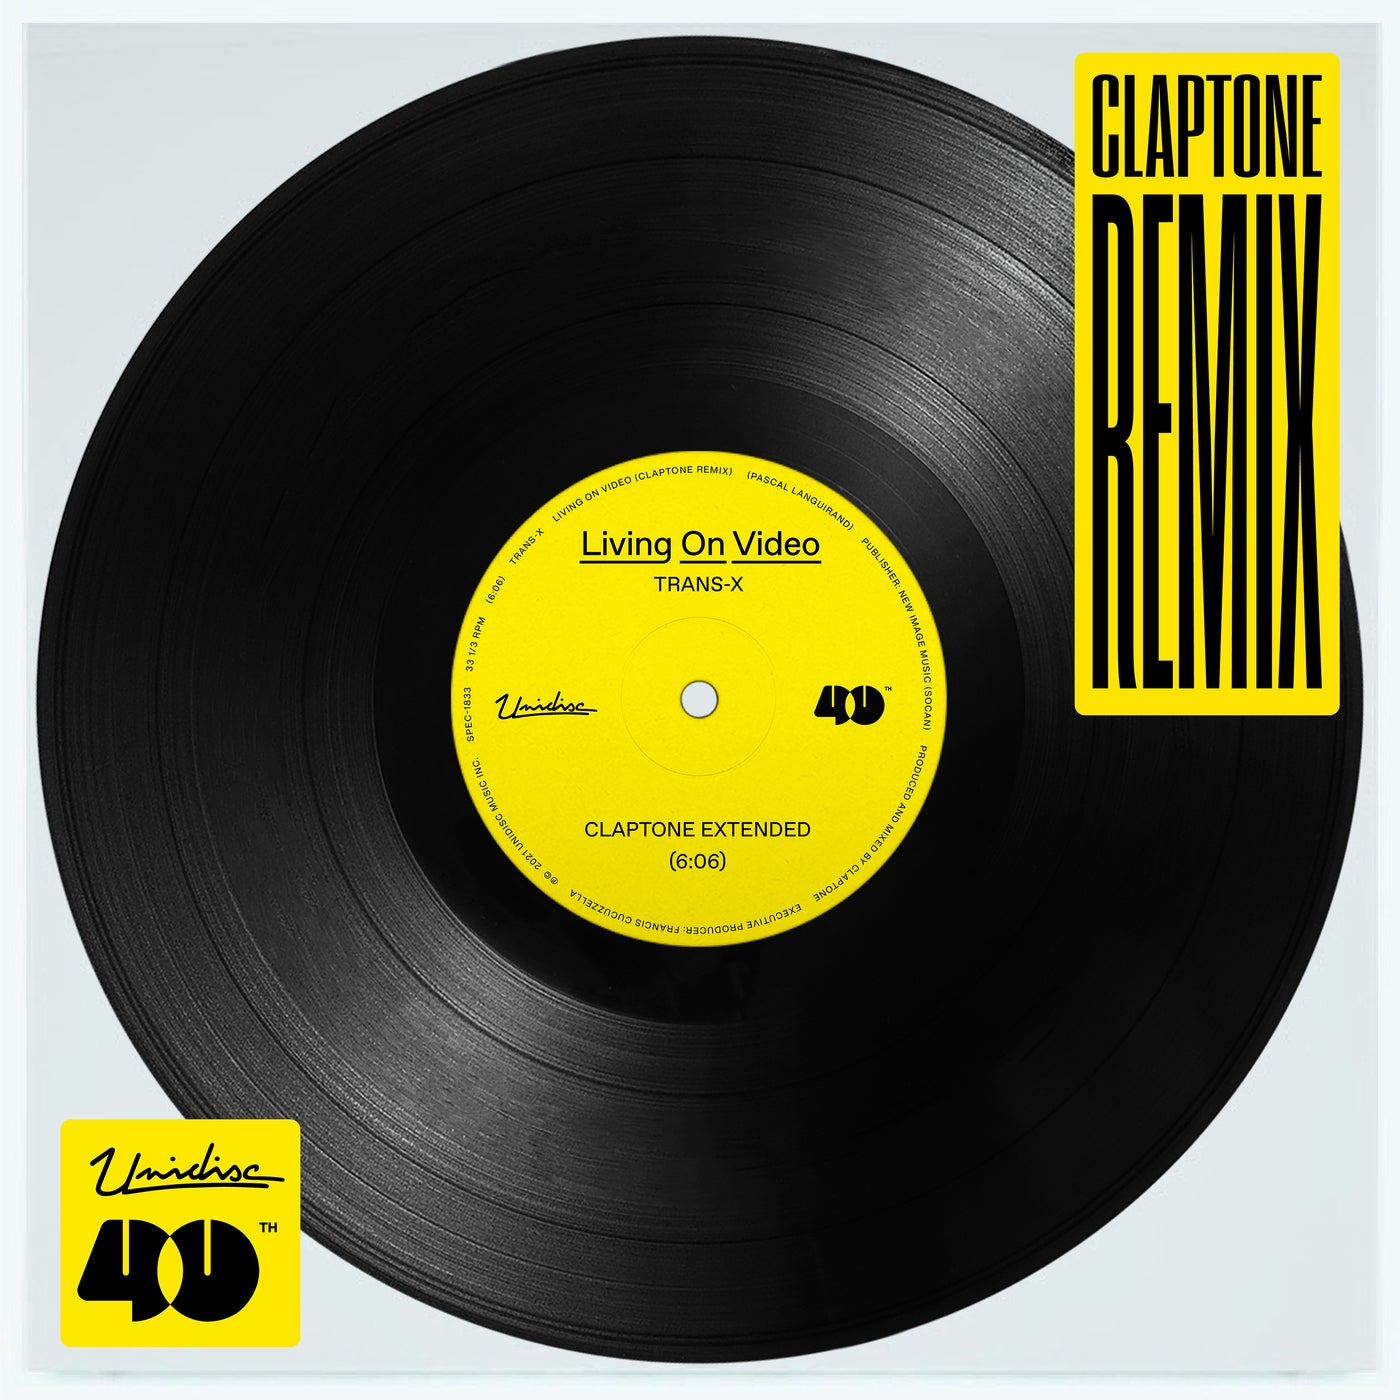 Living On Video (Claptone Extended Remix)